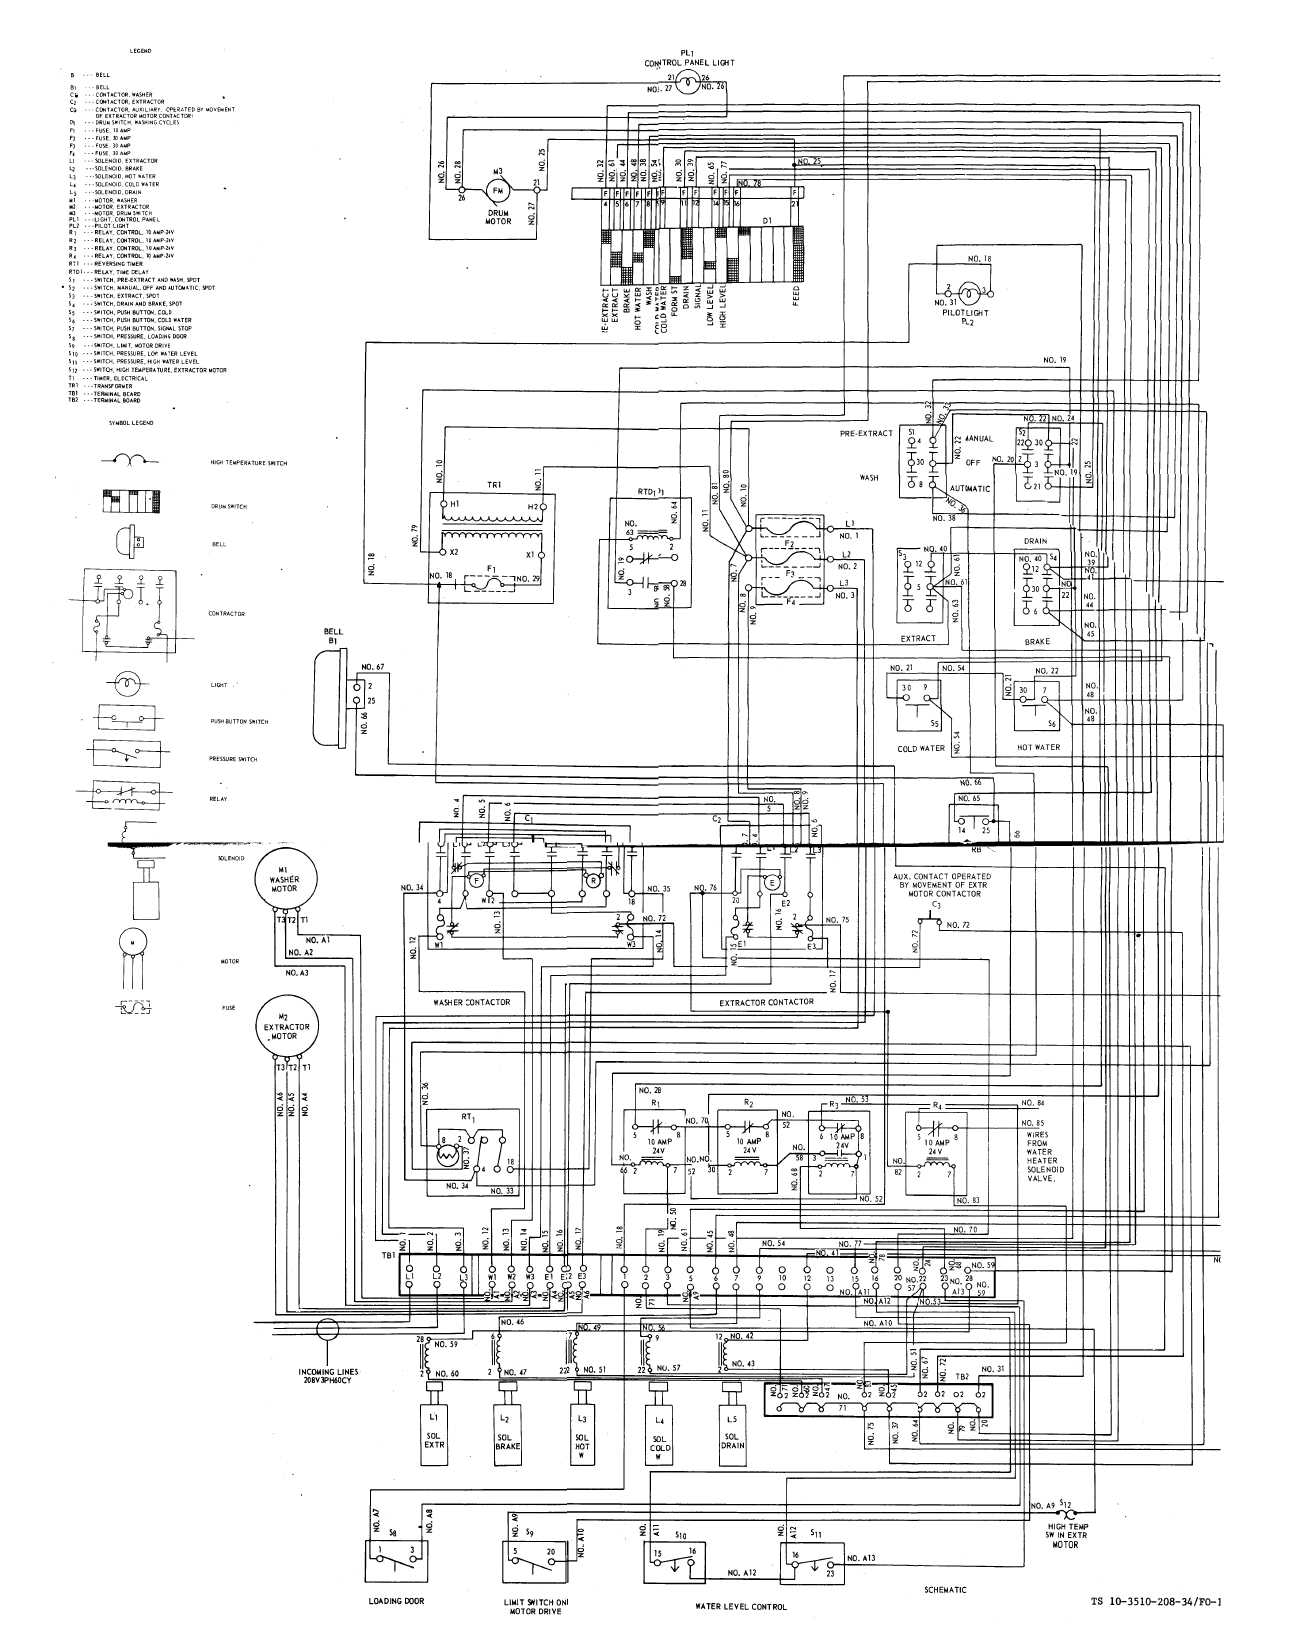 Figure FO-1. Schematic wiring diagram (washer-extractor)